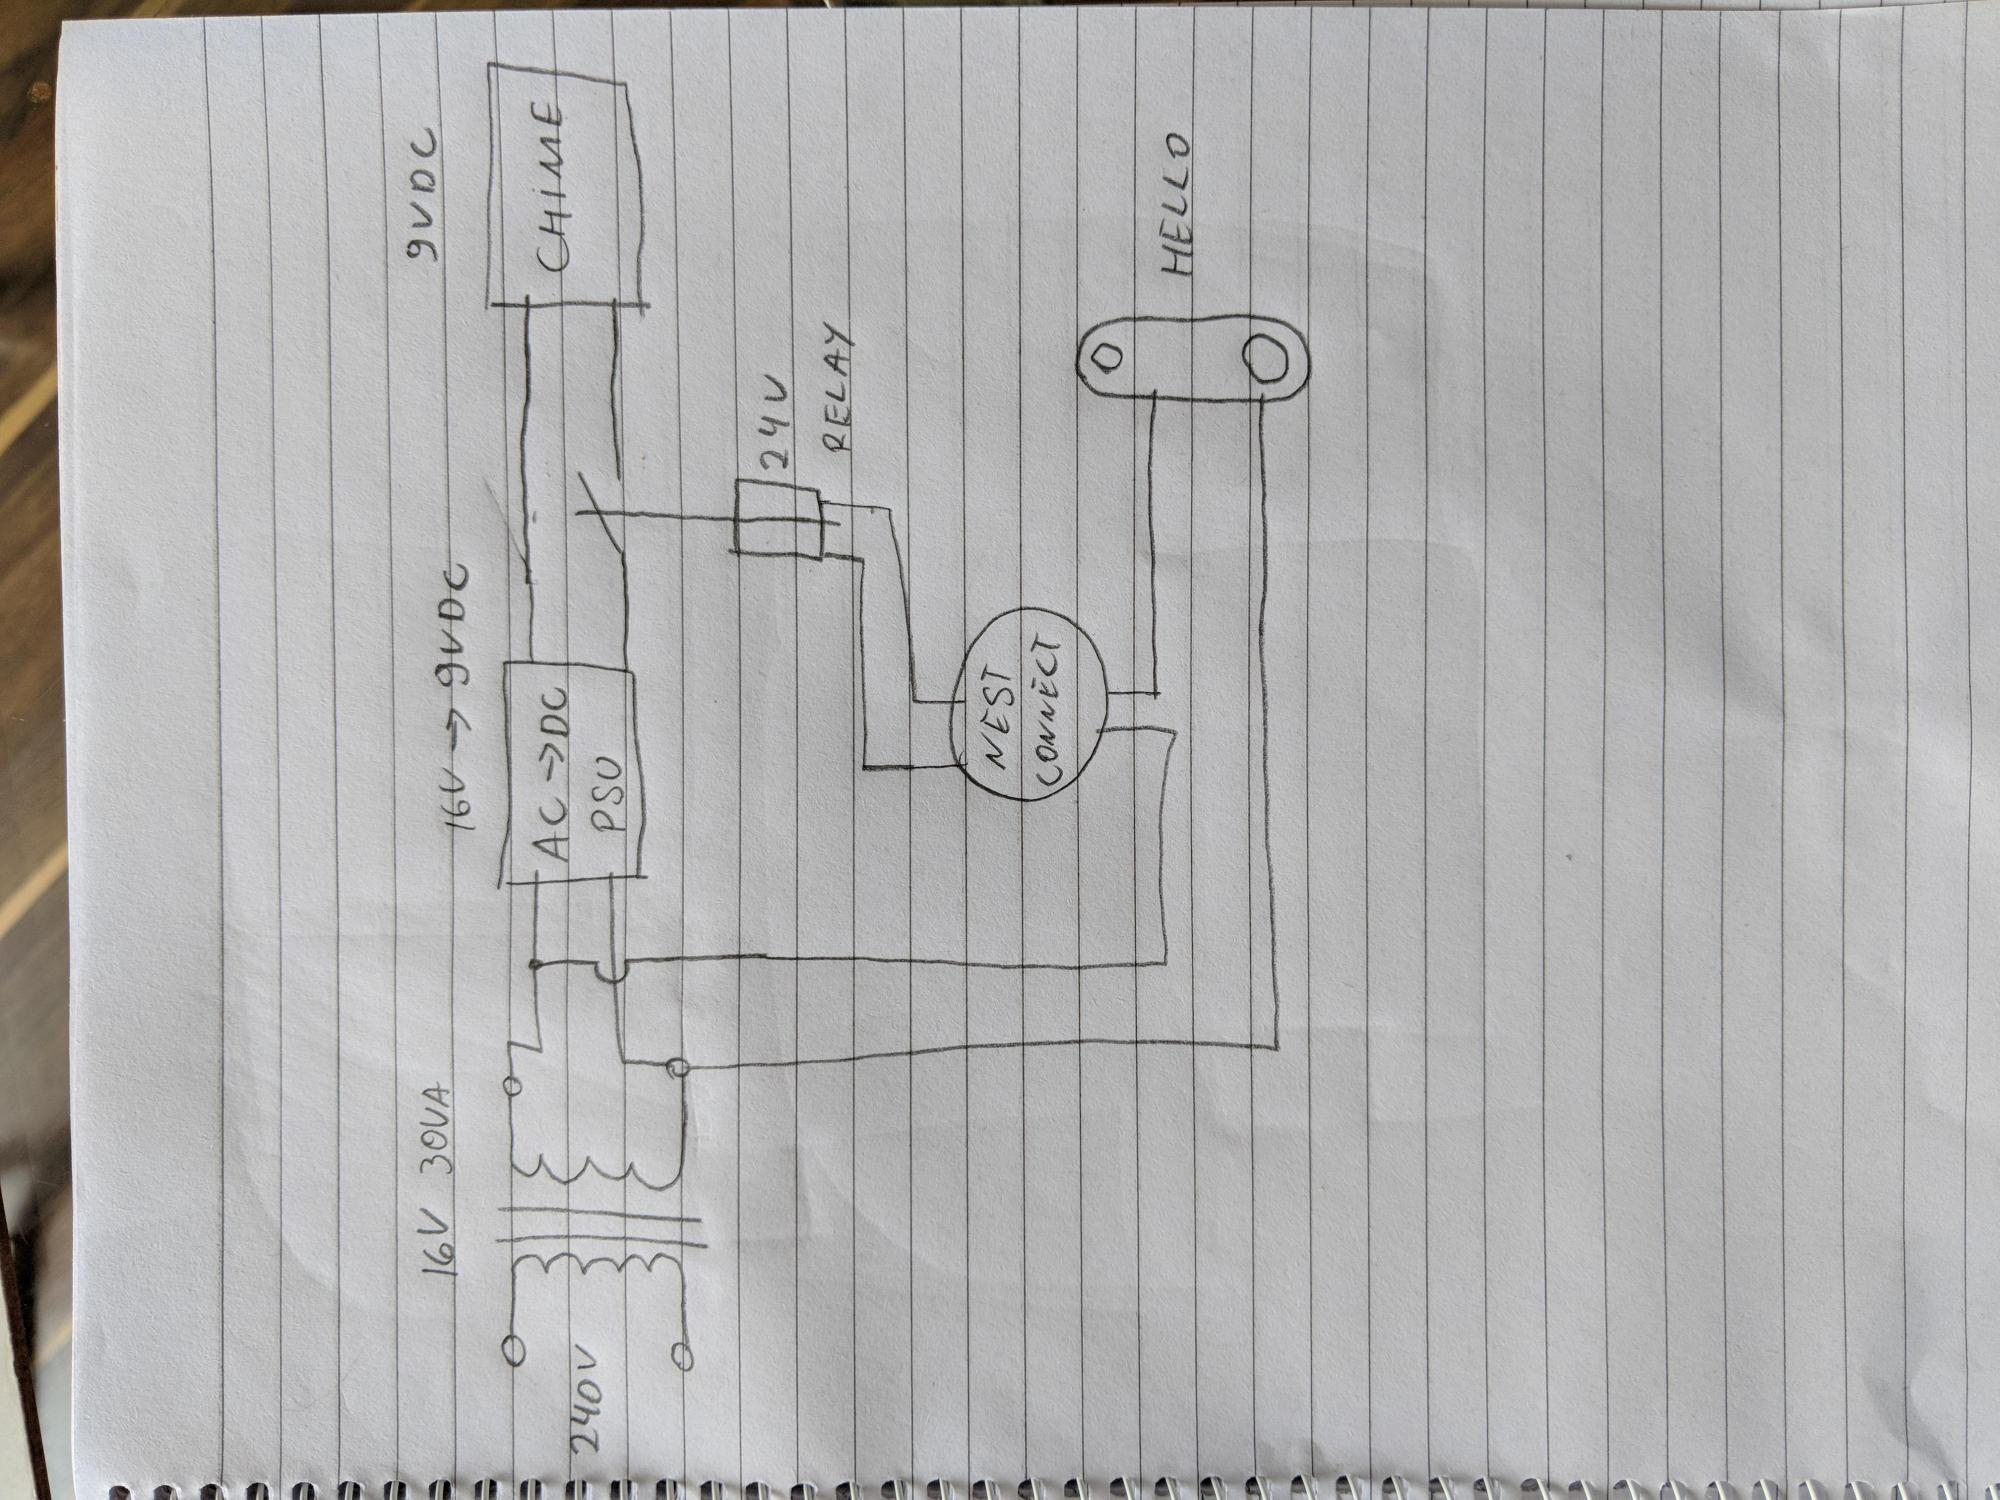 hight resolution of nest hello wiring diagram for battery operated wired doer bell uk